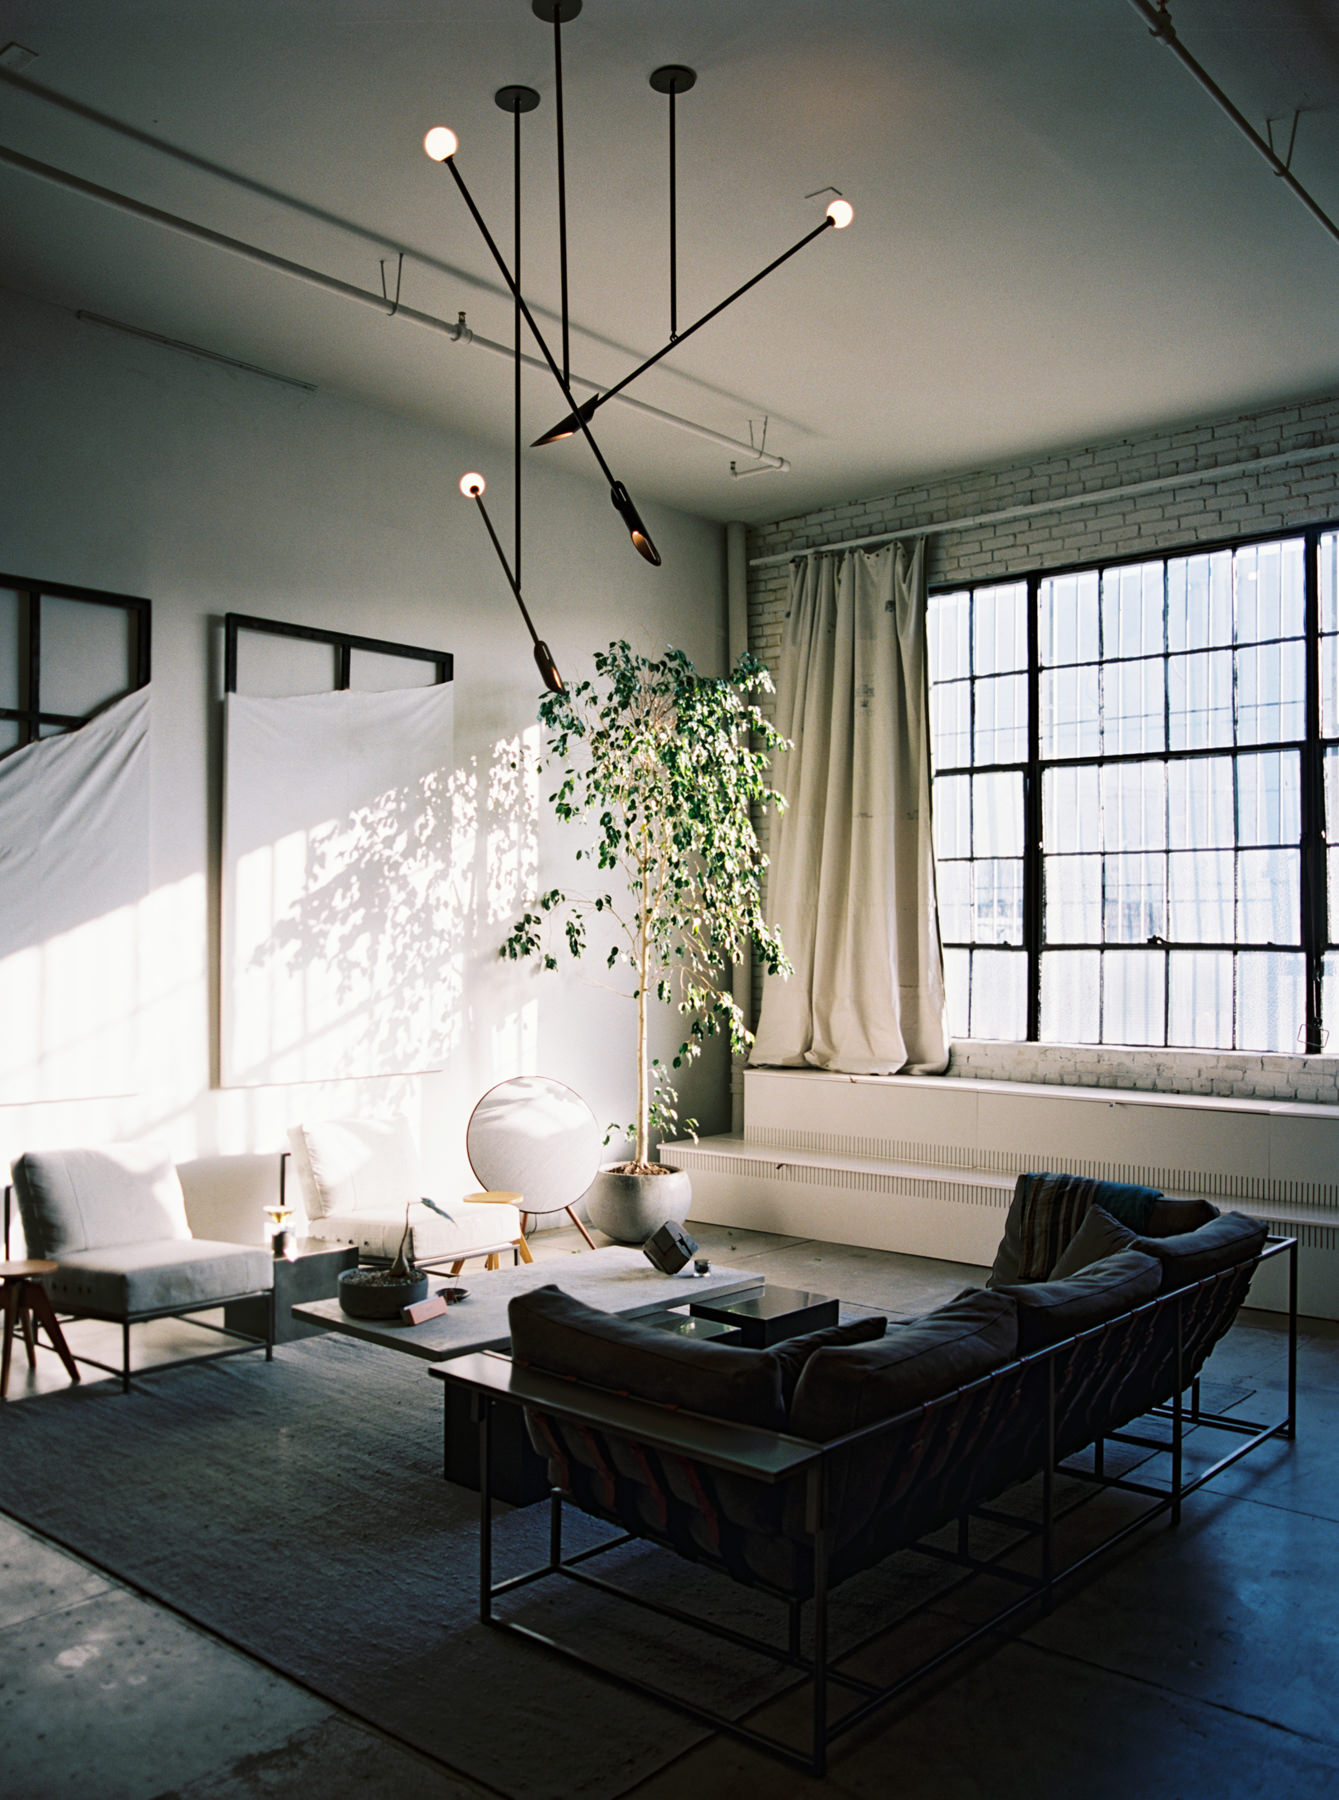 Stephen Kenn, Justin Chung, Loft, Los Angeles, California